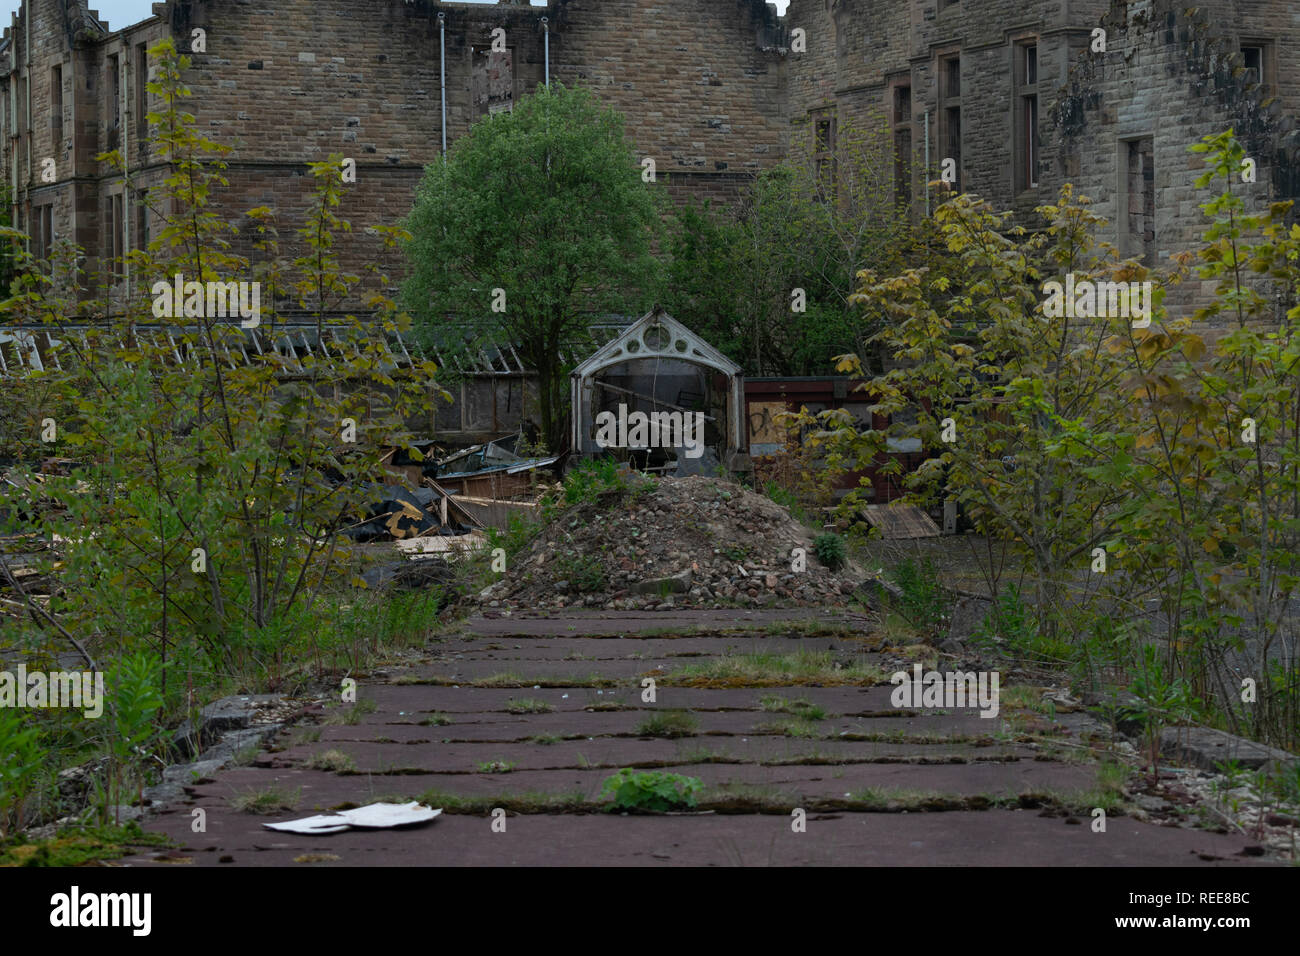 Abandoned Asylum Located In Scotland Left To Be Reclaimed By Nature Stock Photo Alamy